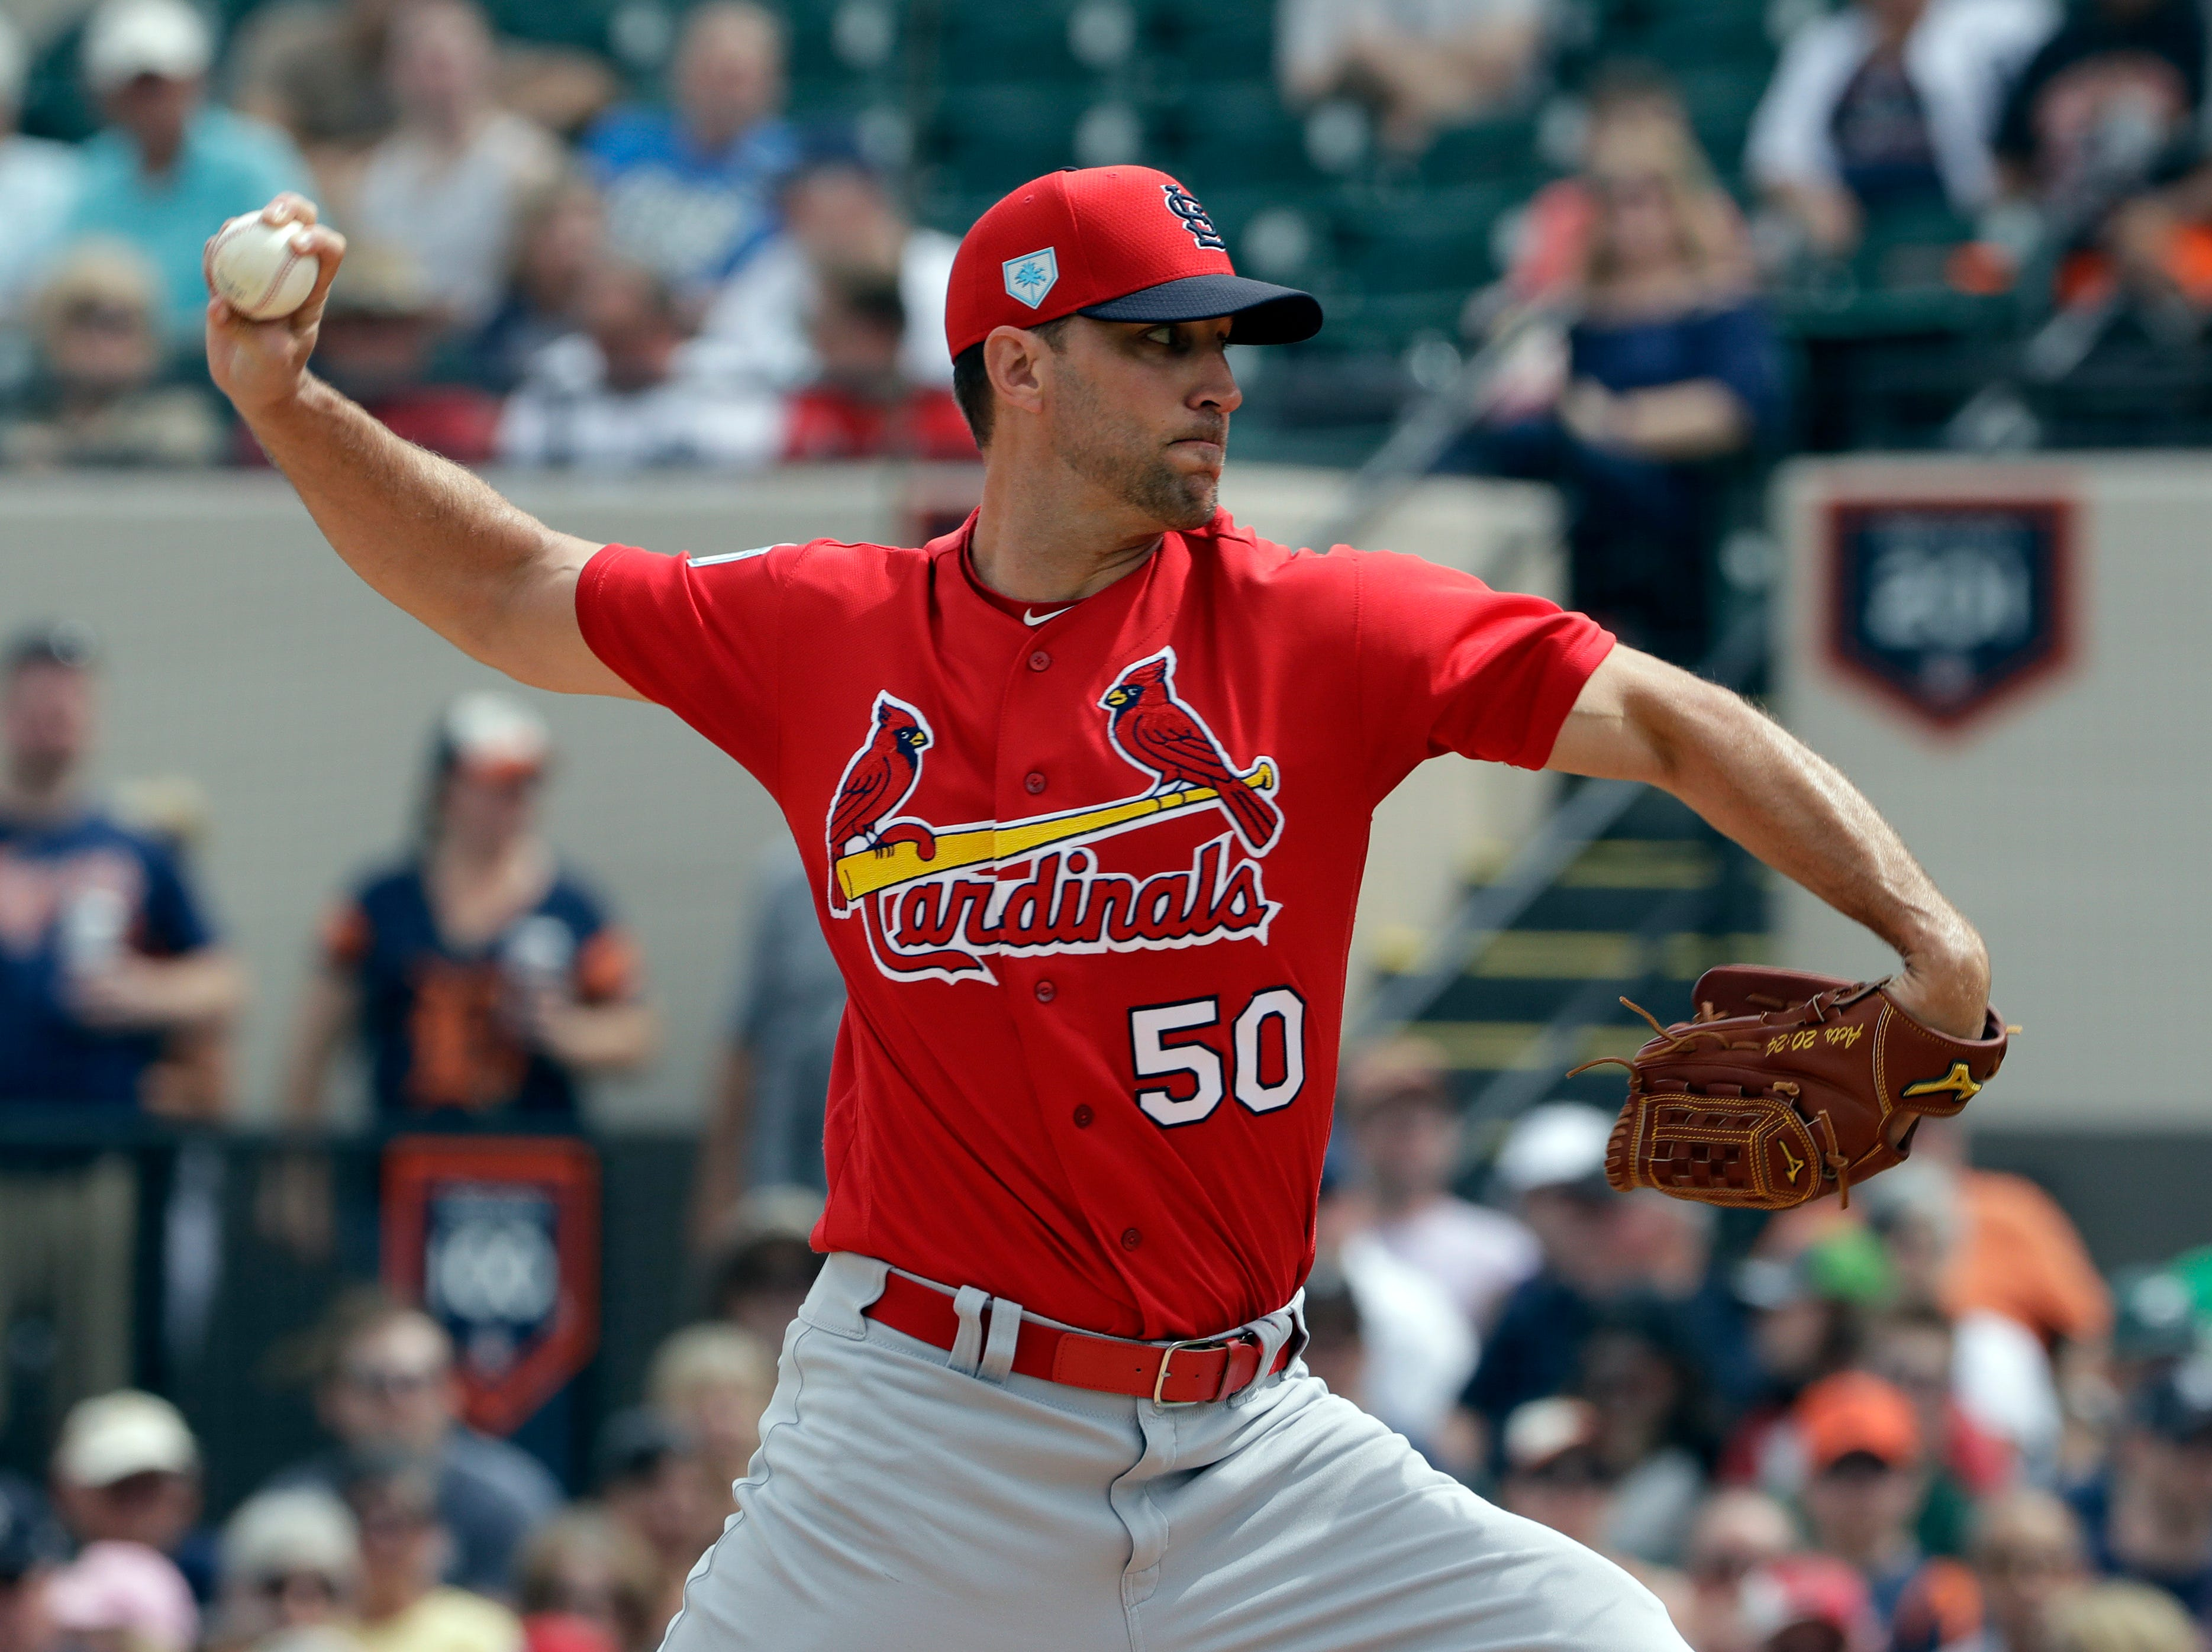 St. Louis Cardinals starting pitcher Adam Wainwright goes into his windup against the Detroit Tigers during the first inning.